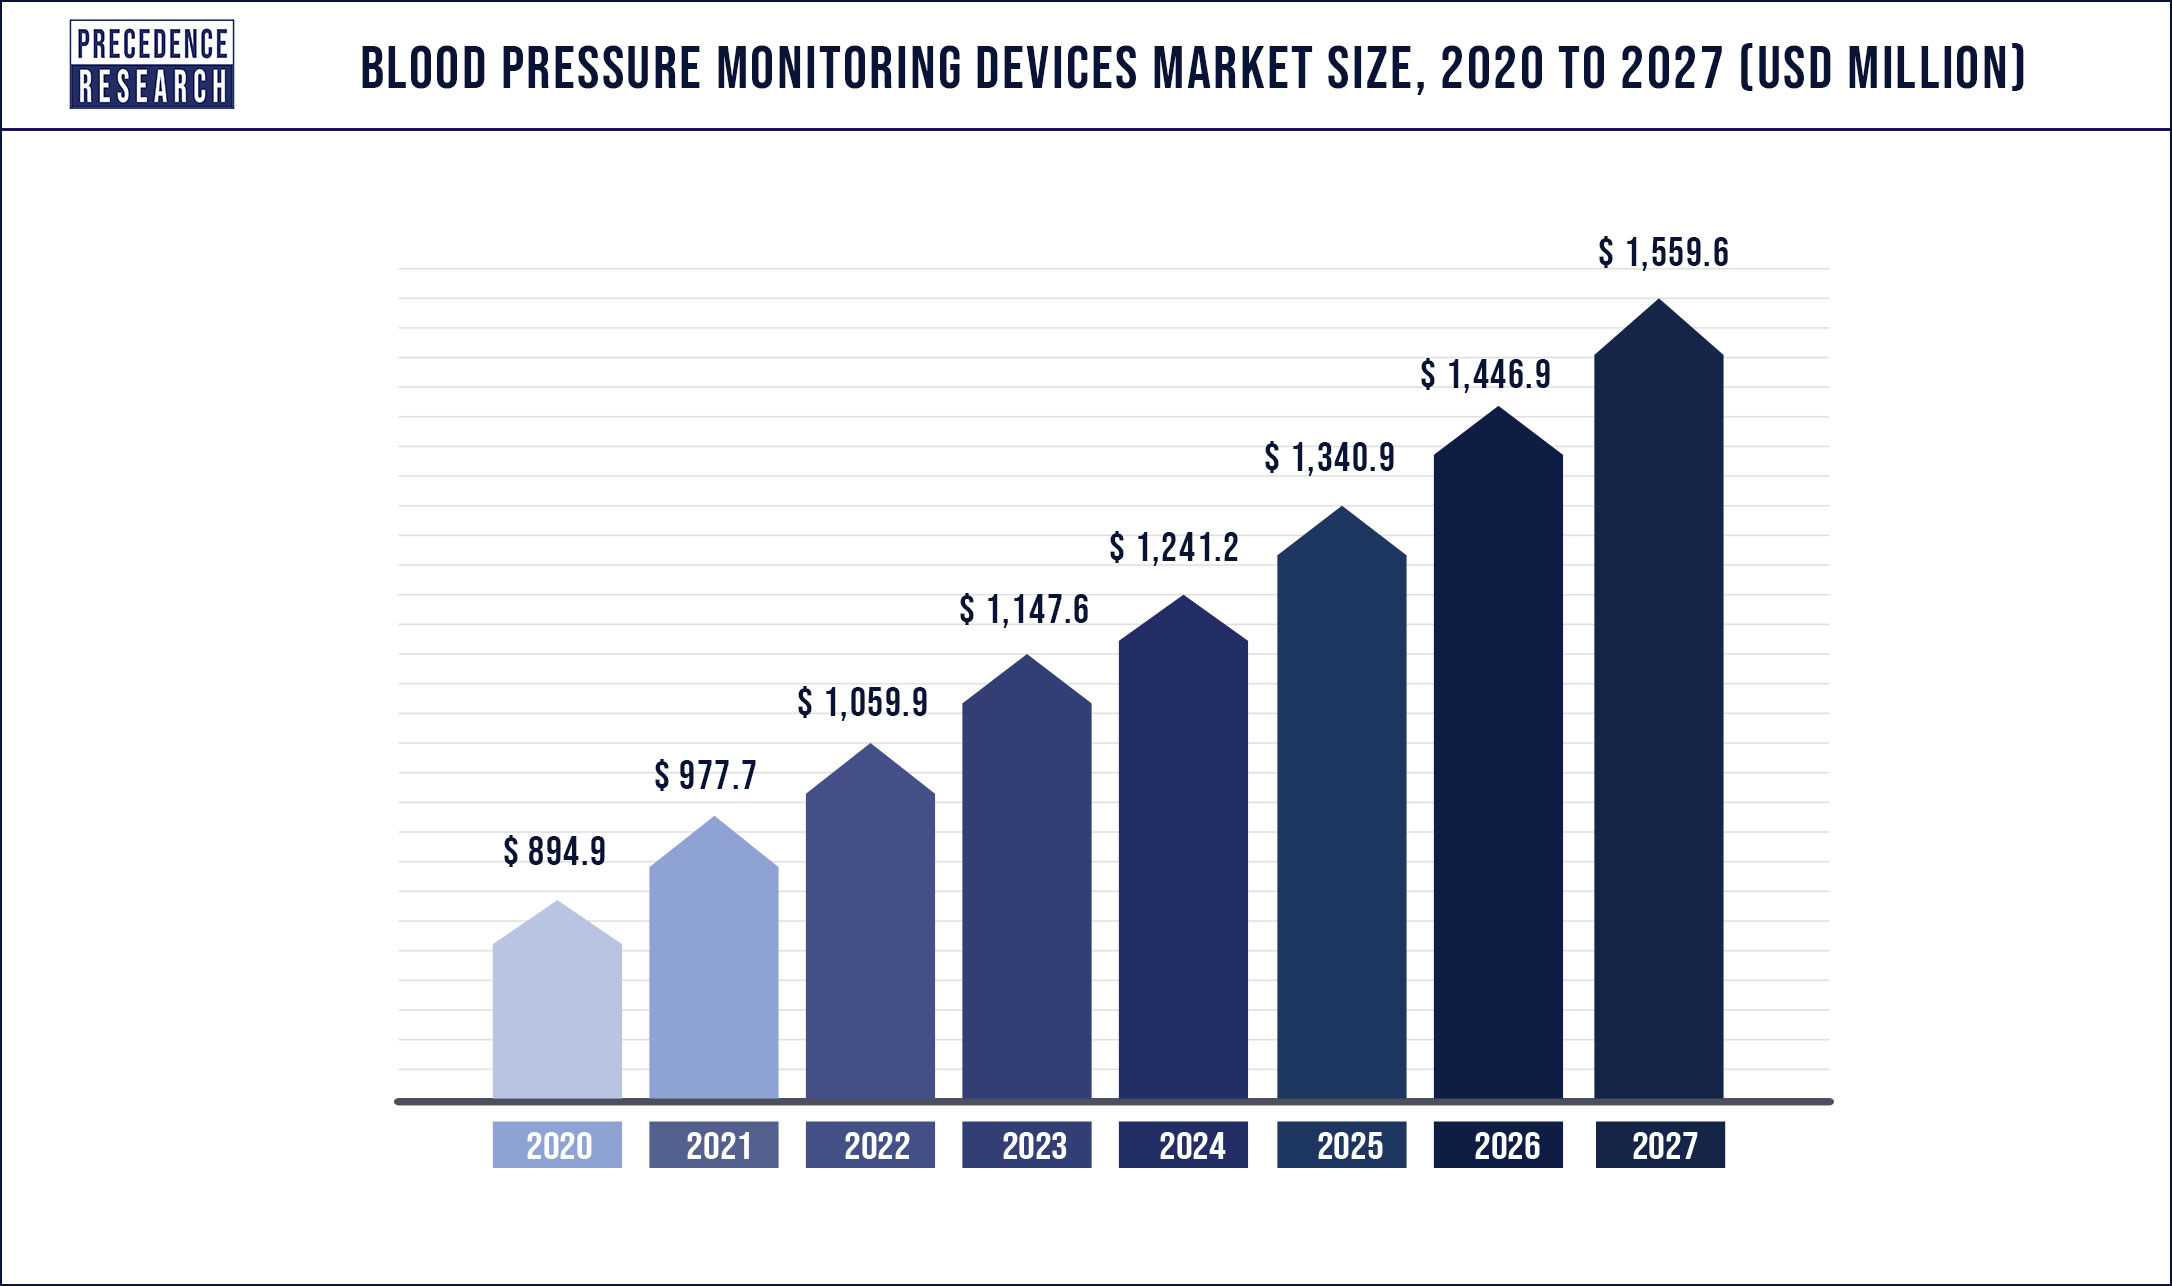 Blood Pressure Monitoring Devices Market Size 2020 to 2027